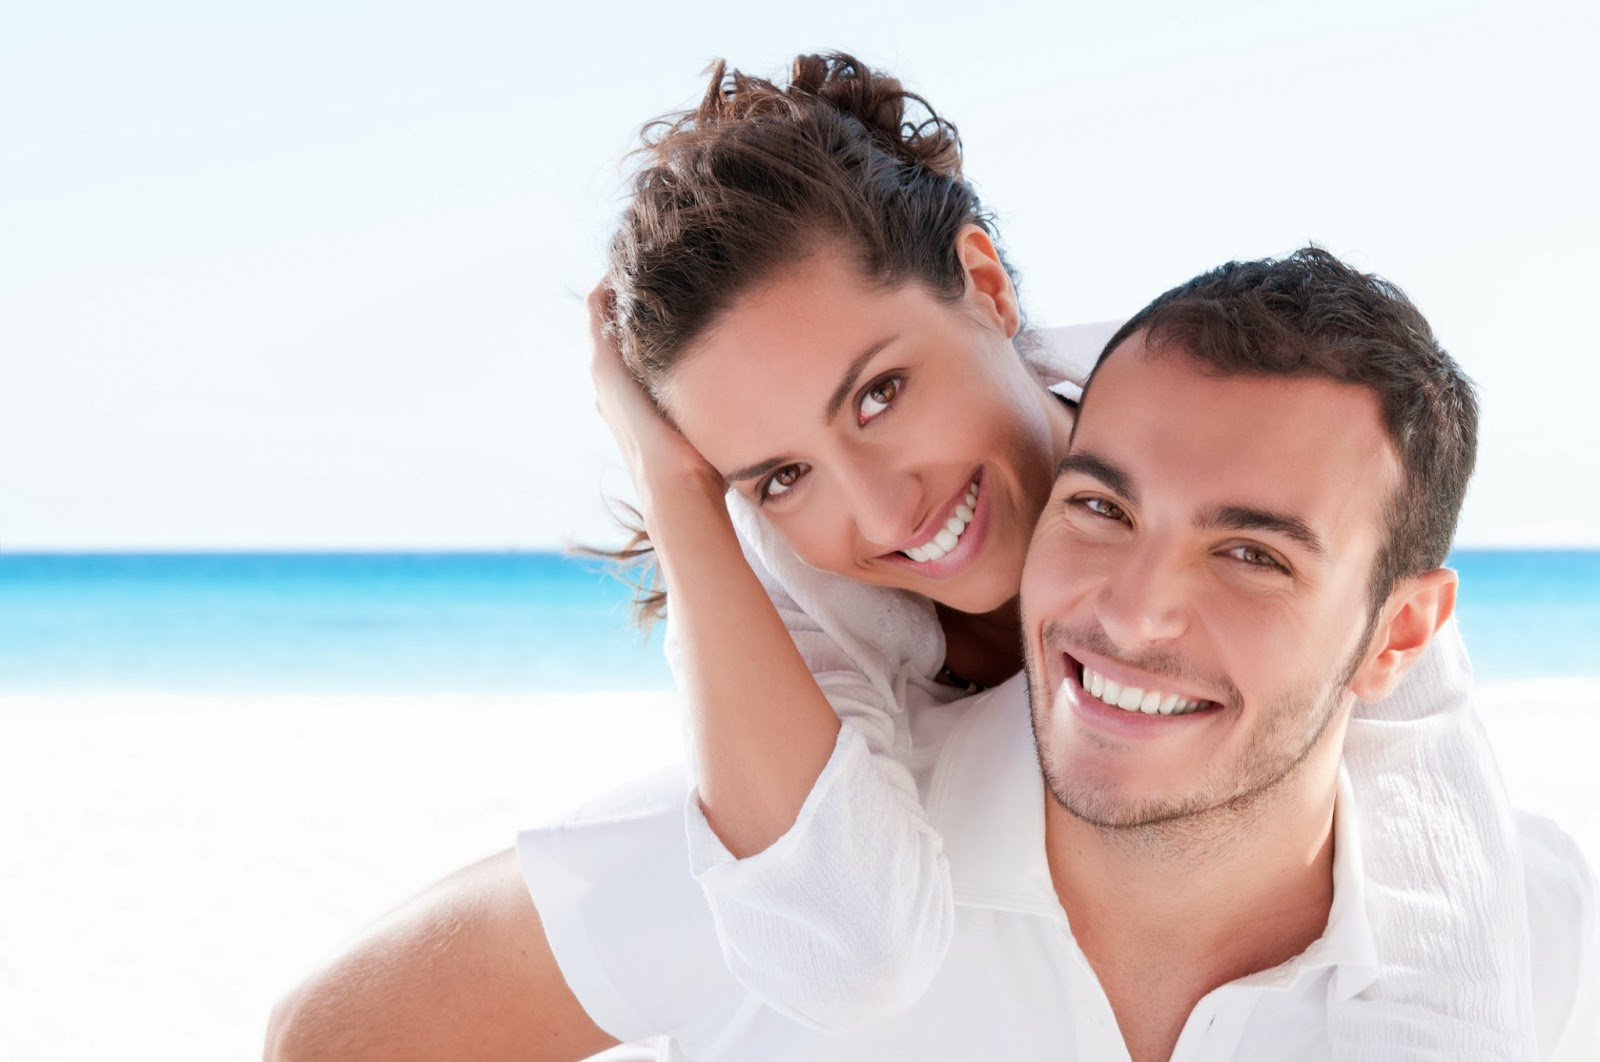 Have a beautiful smile like this couple on the beach and stop smoking. Call your dentist in Beverly Hills for help.